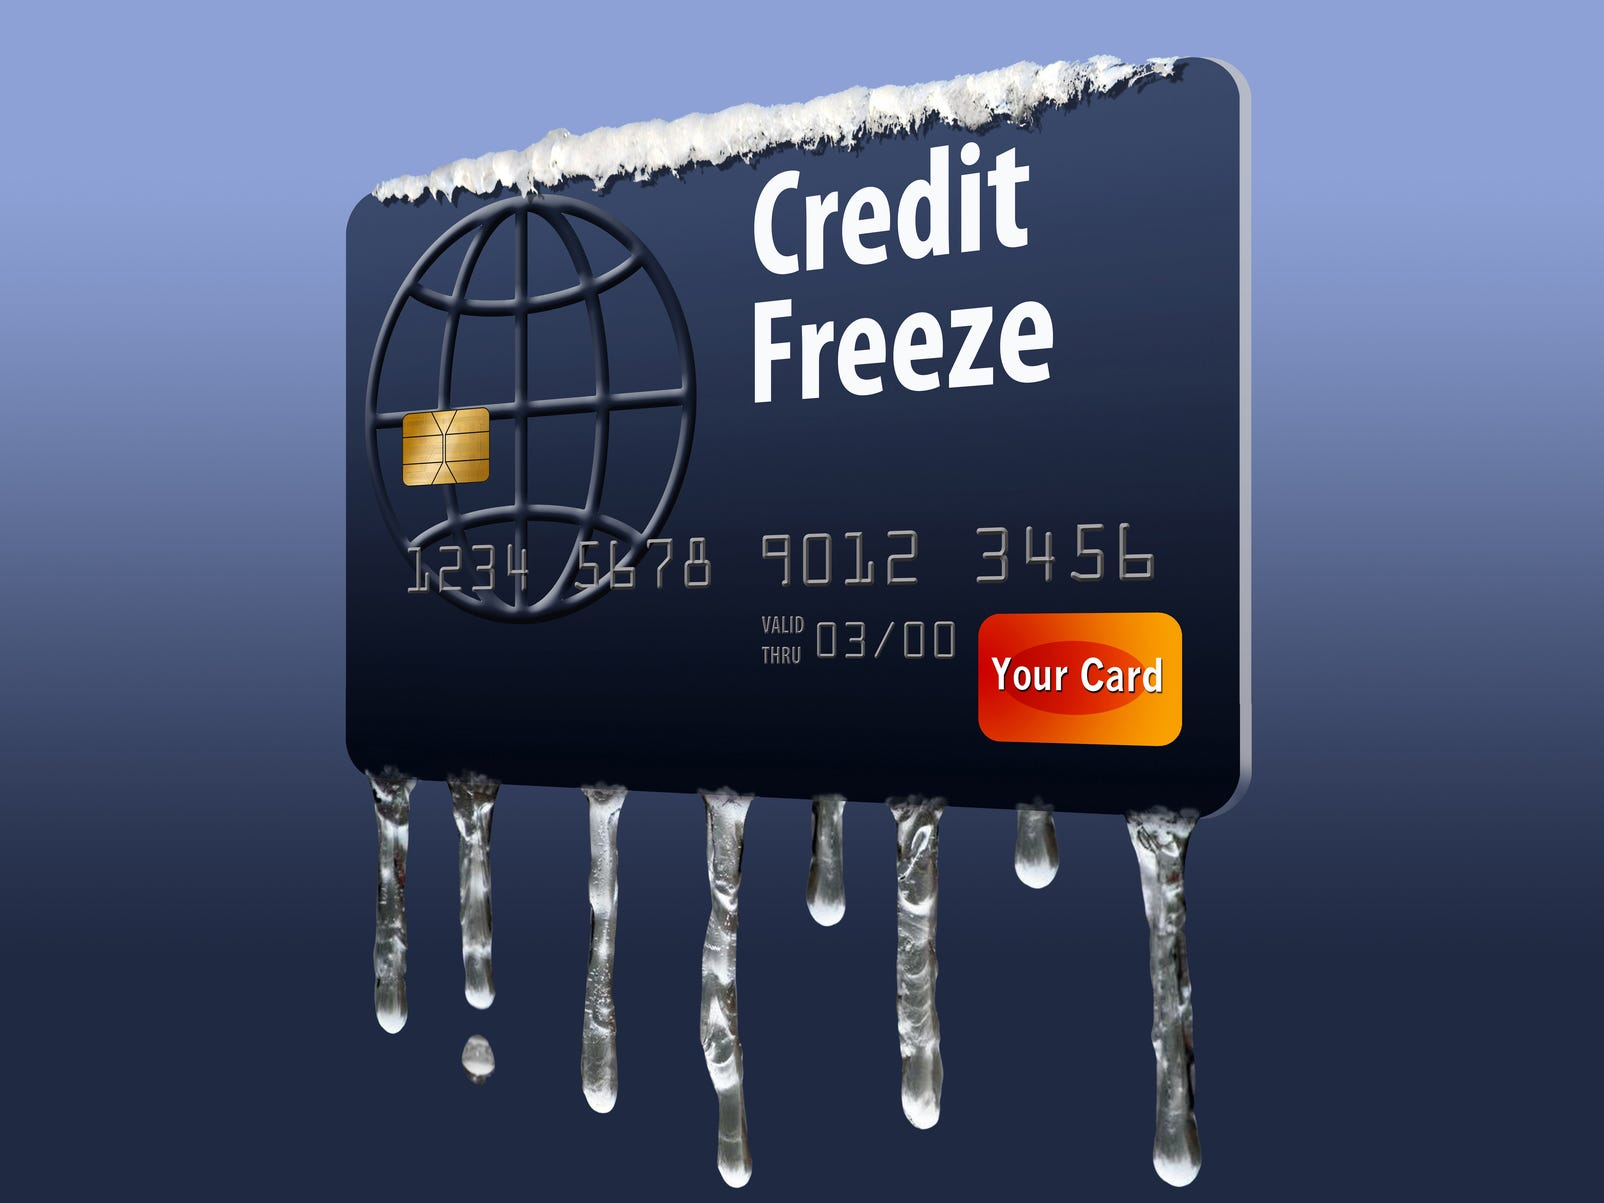 Equifax Breach: Freezing your credit is now free in all states under a new law